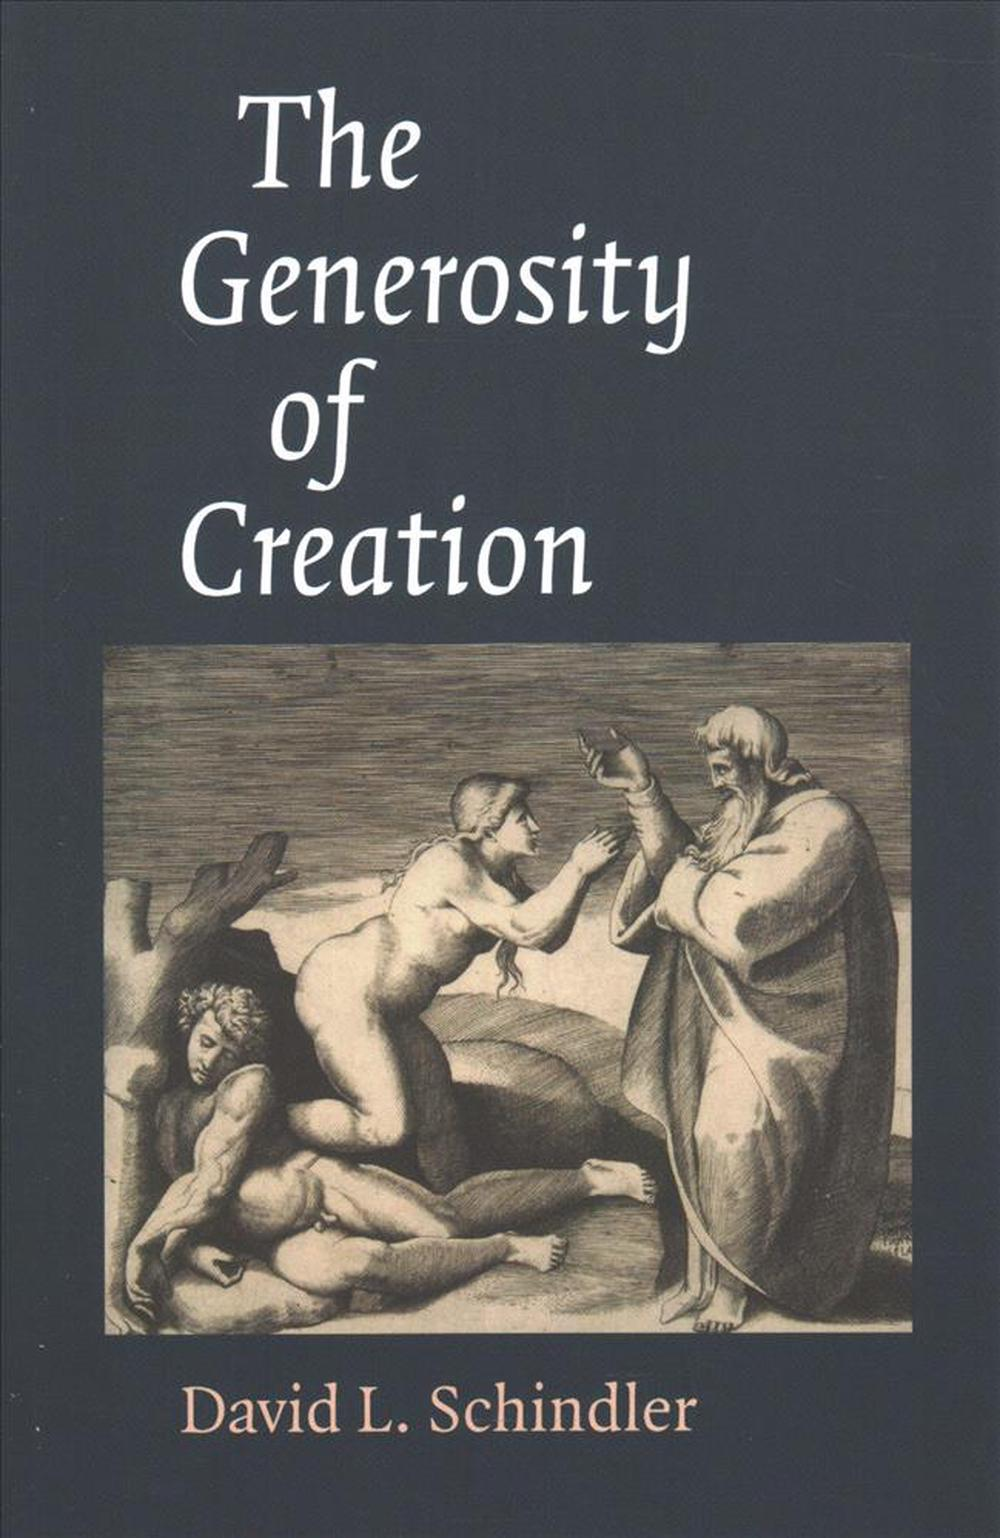 The Generosity of Creation by David L. Schindler, ISBN: 9781948195027